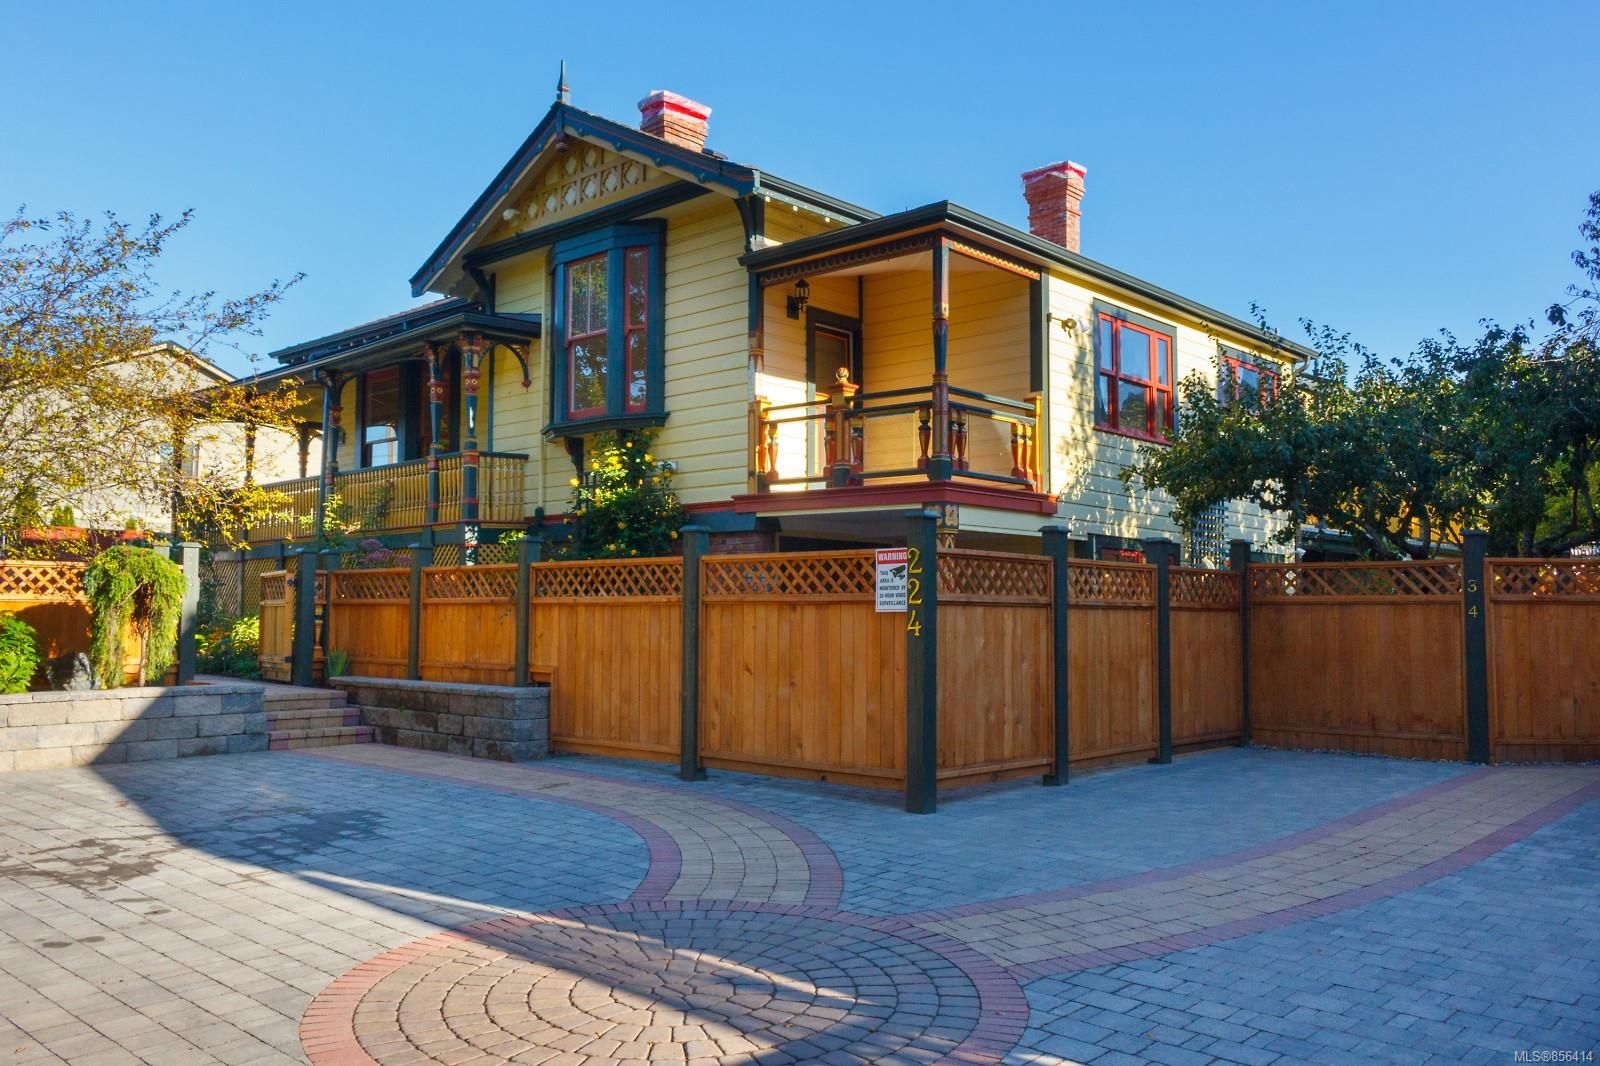 Main Photo: 2 224 Superior St in : Vi James Bay Row/Townhouse for sale (Victoria)  : MLS®# 856414